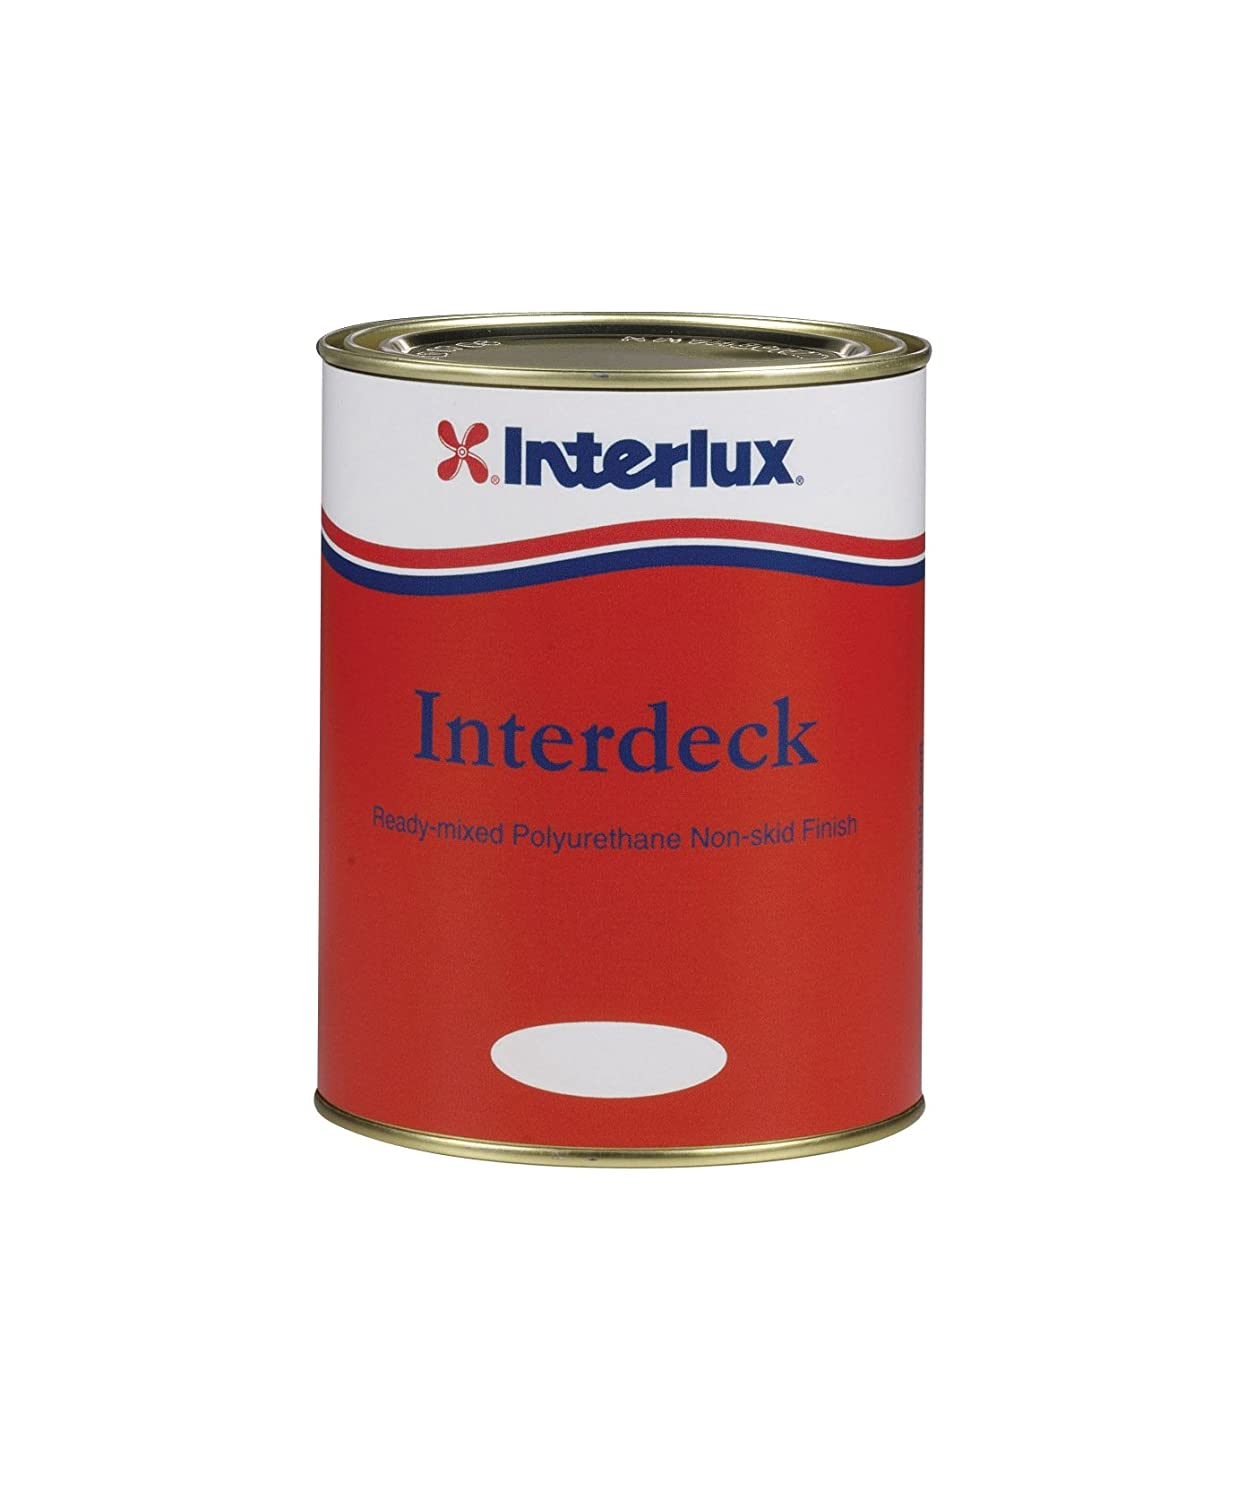 3. Interlux YJB000/QT Interdeck Slip-Resistant Deck Paint